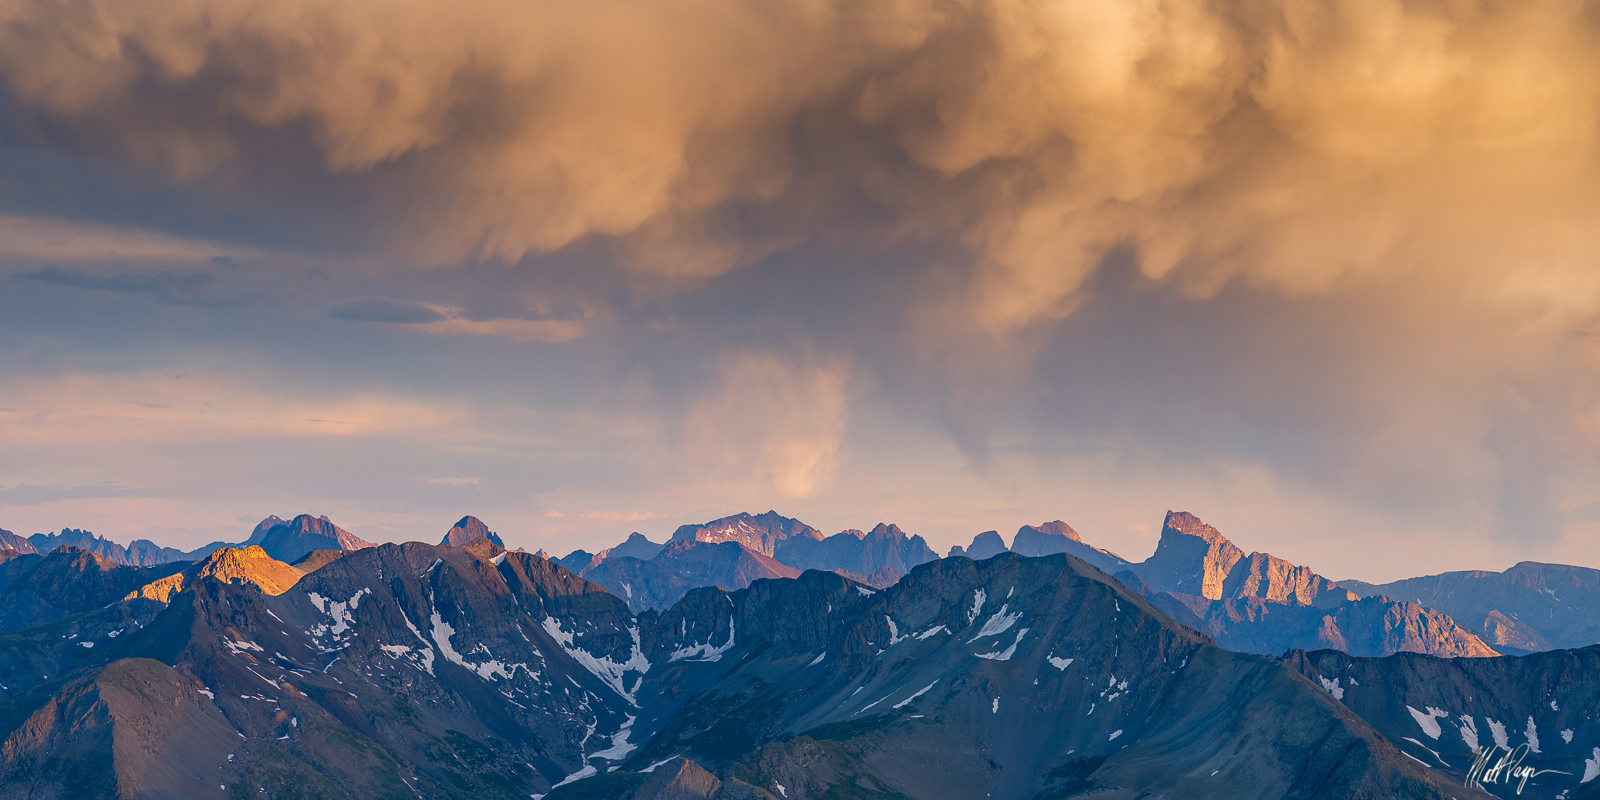 This panorama of the San Juan Mountains near Silverton, Colorado features some impressive cloud formations at sunset above some...